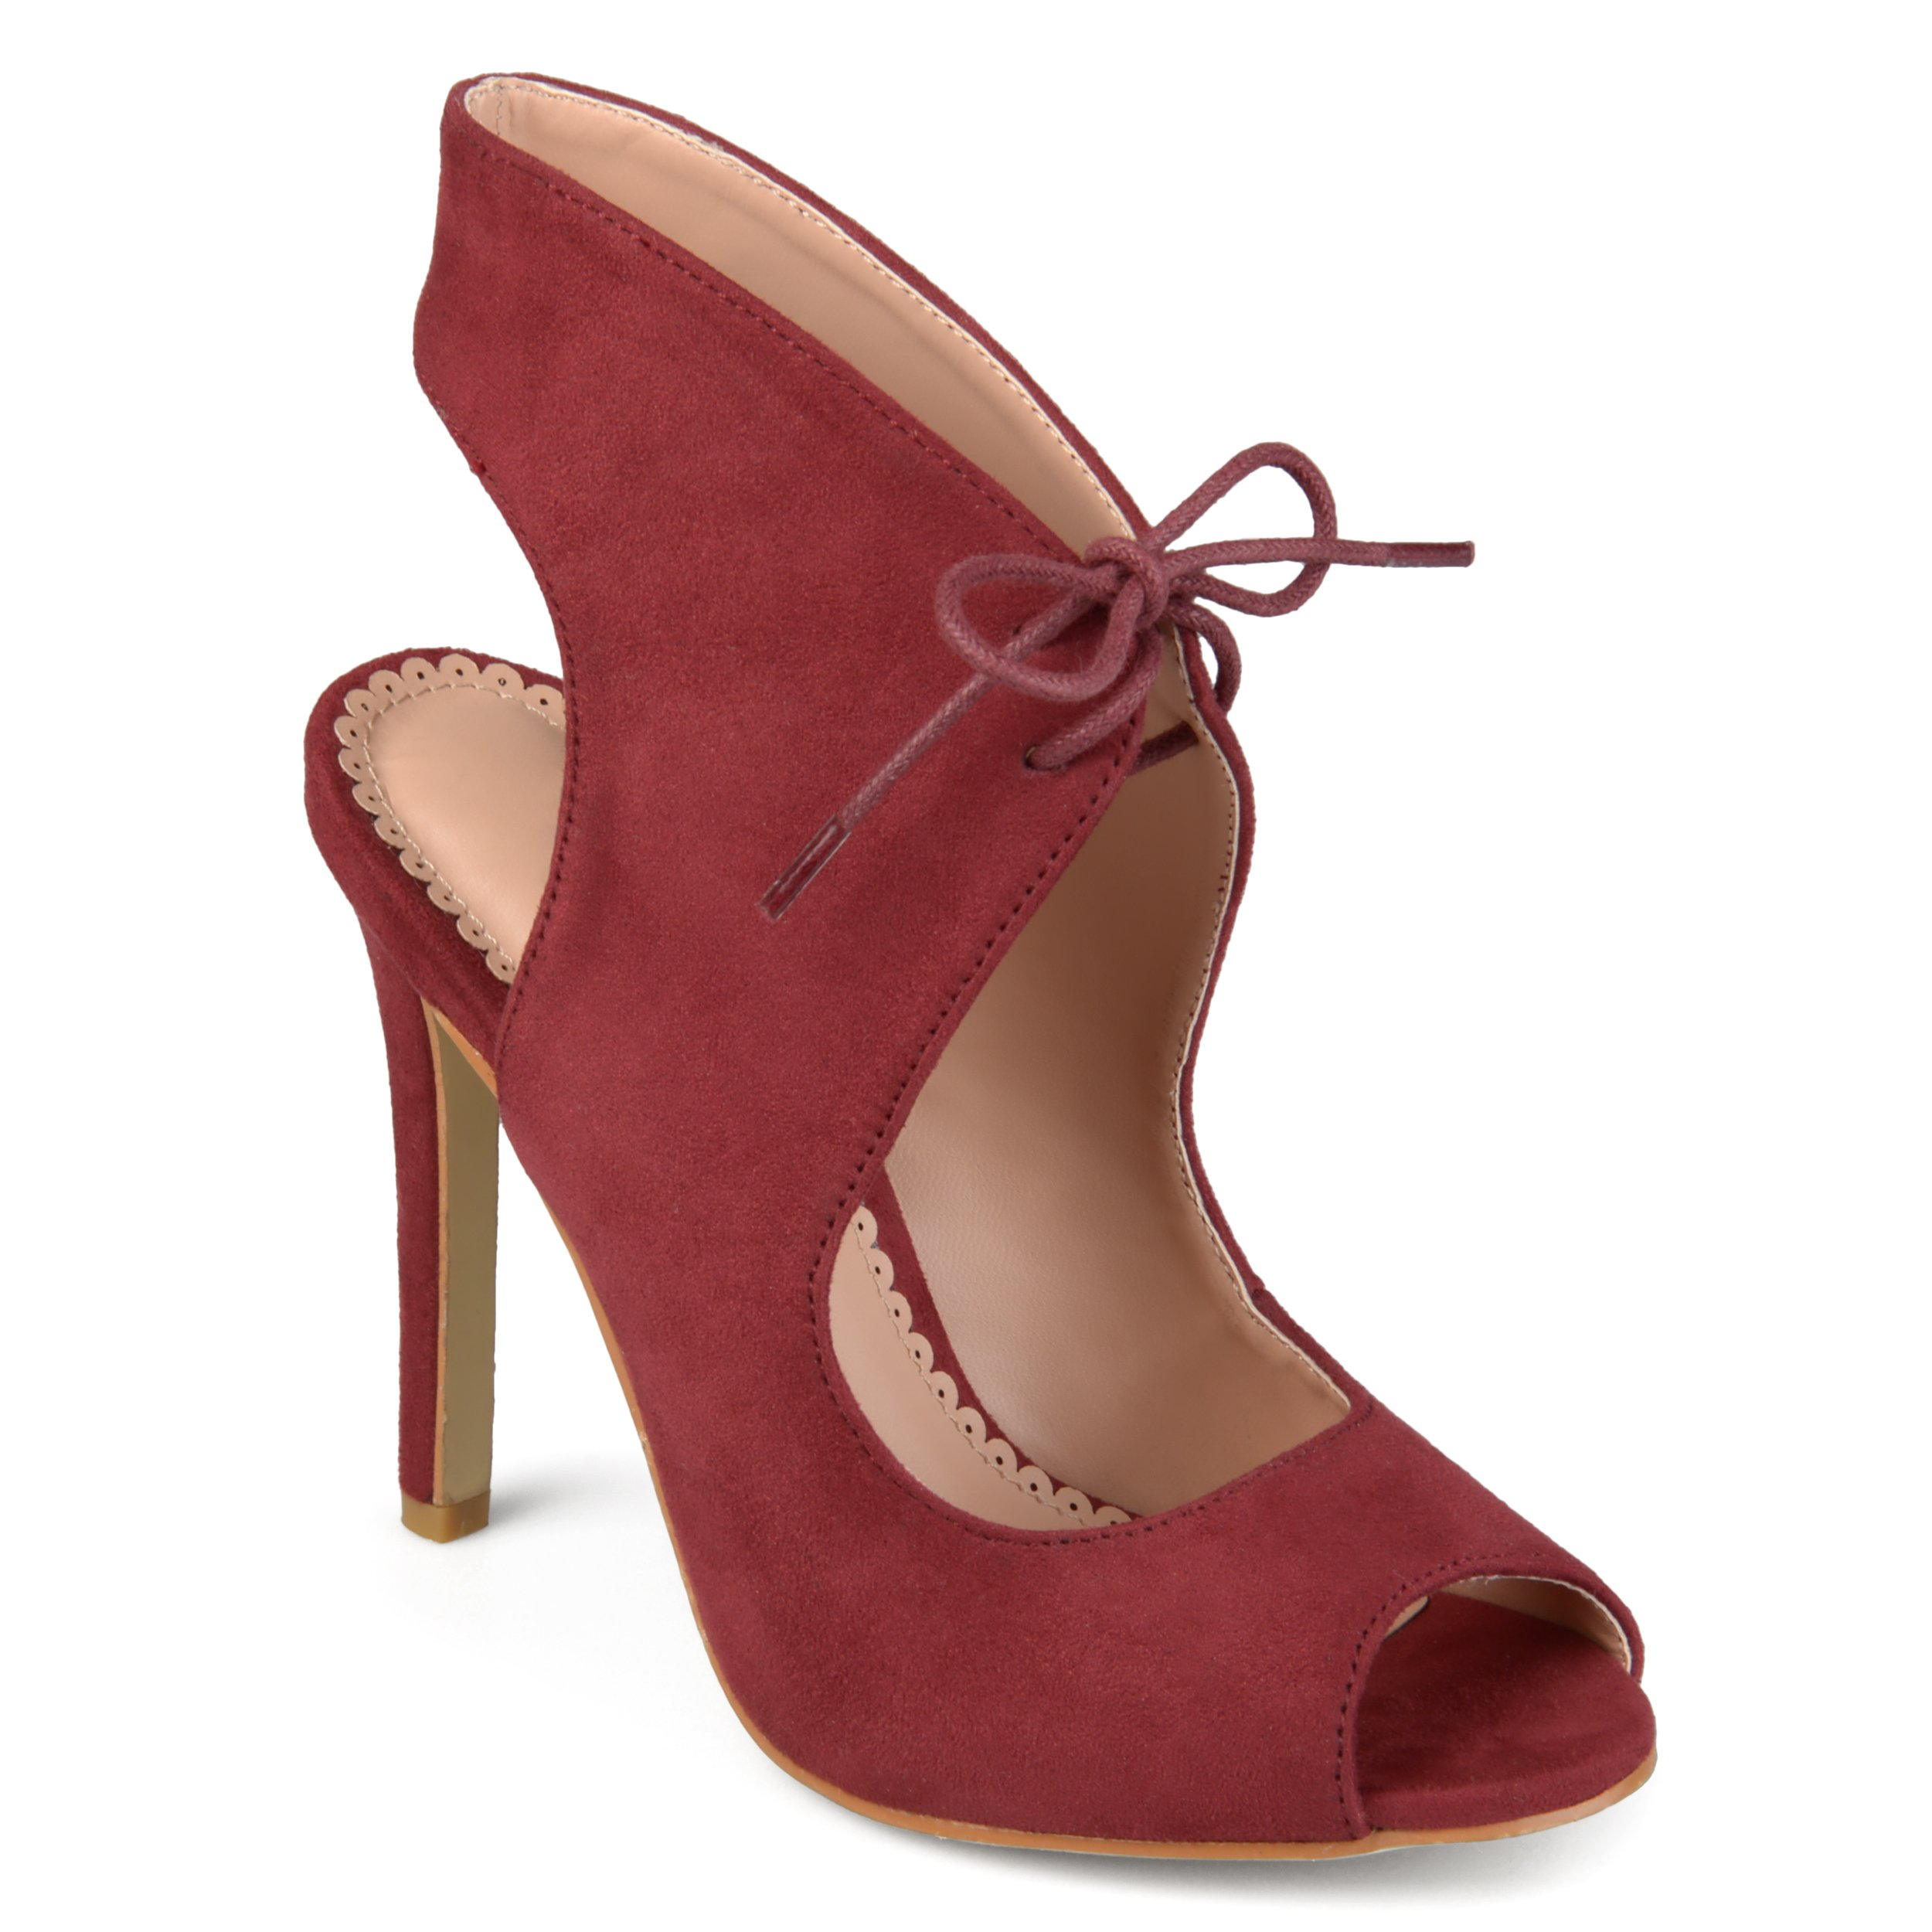 b05e24545fc5 Step into bold style with the peep-toe stiletto heel by Journee Collection.  These shoes feature soft faux suede uppers that rise above the ankles and  ...